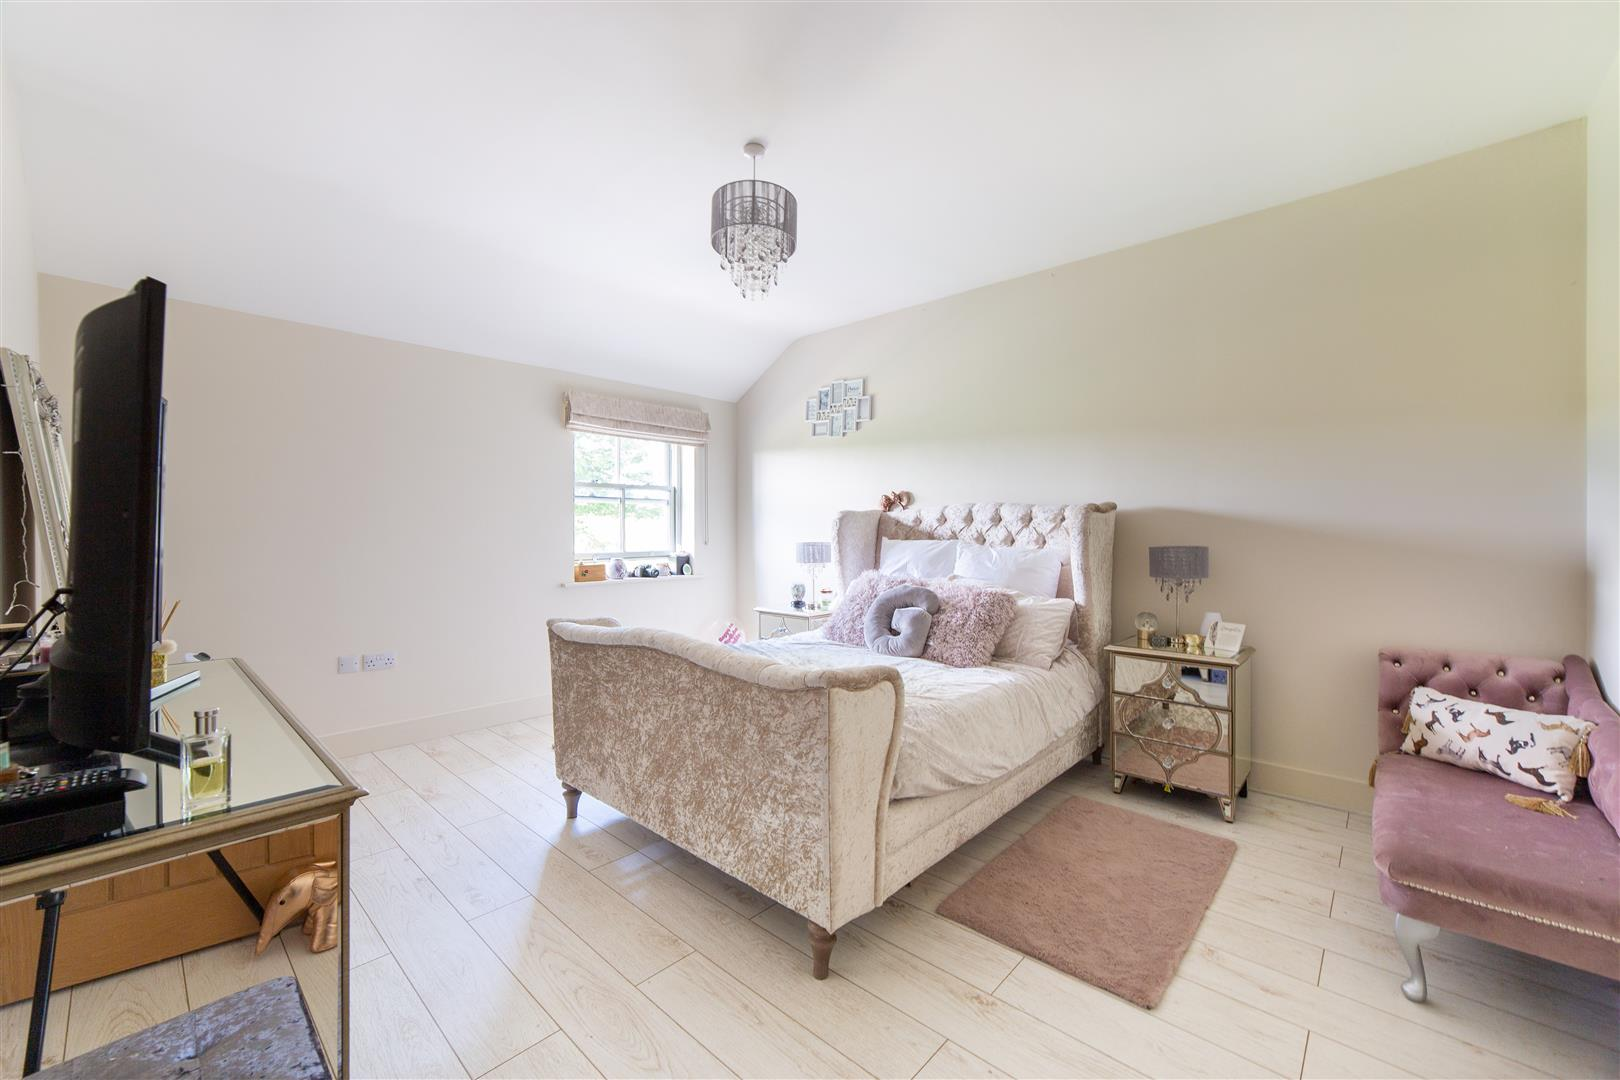 4 bed detached house for sale, Hexham 10